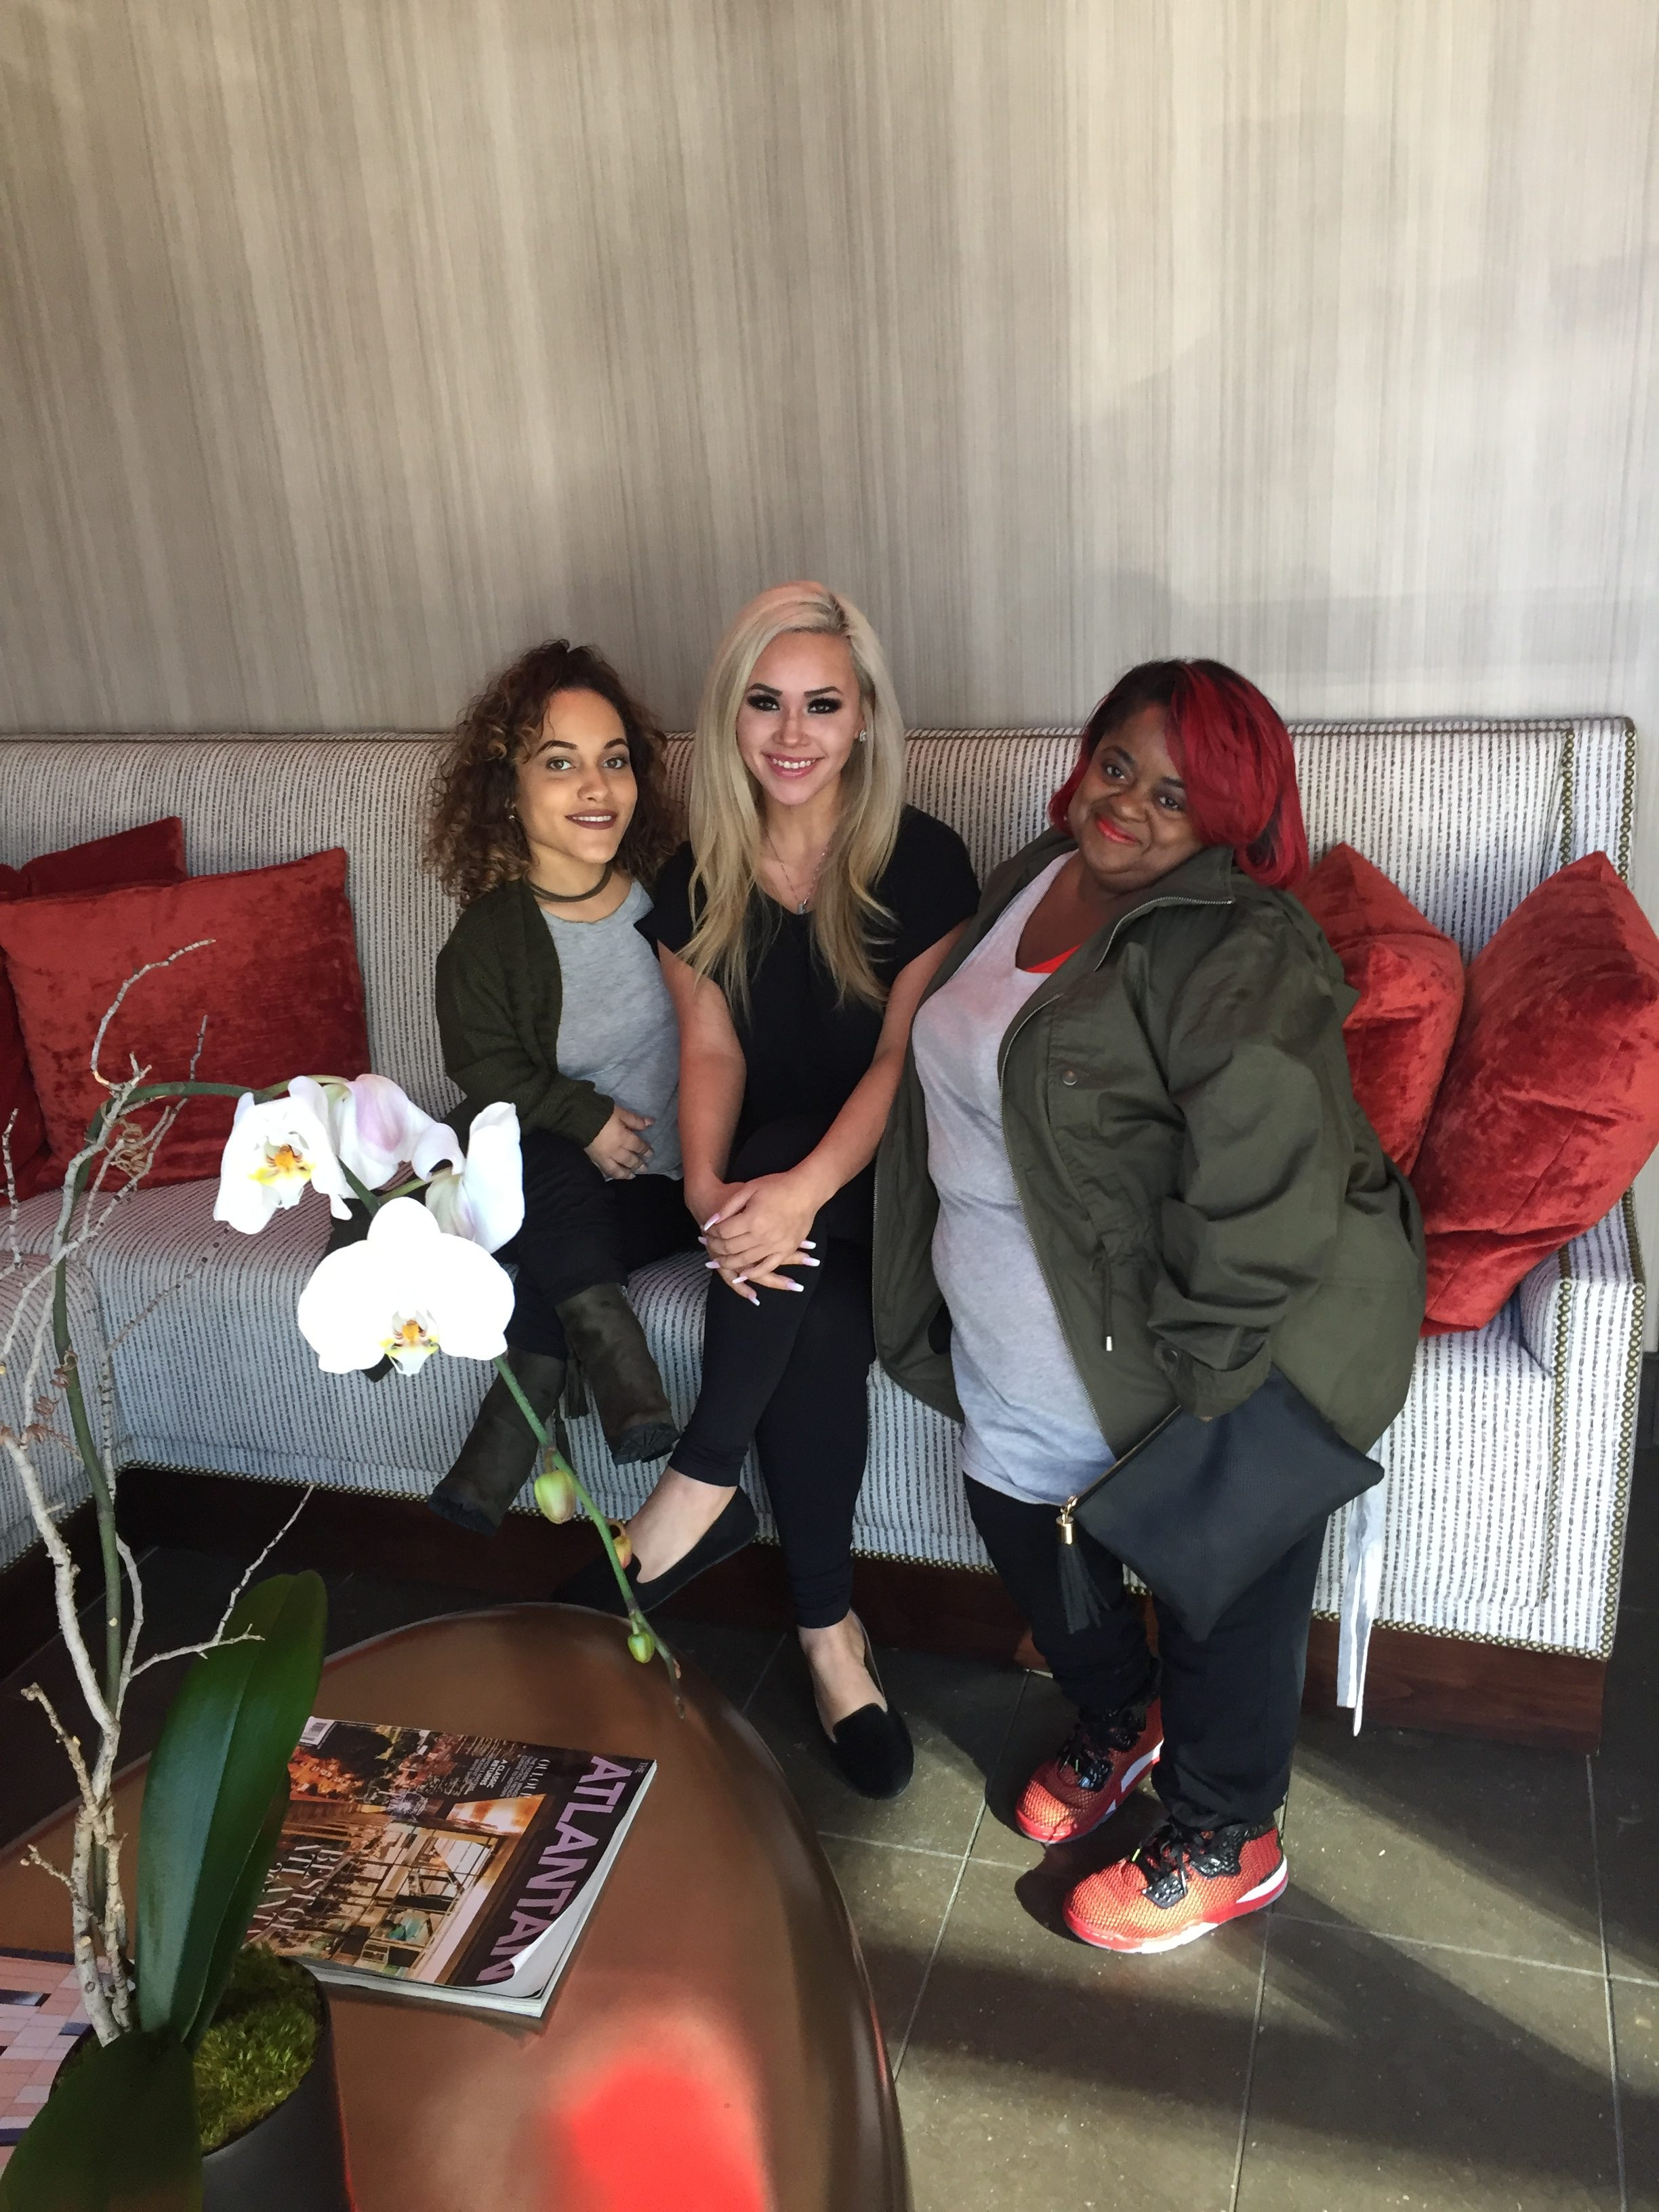 Ms. Juicy and Tanya were at Treat Your Feet Buckhead for a filming of an episode of Little Women of Atlanta which will be airing on the Lifetime channel. They also got a foot massage while they were here.